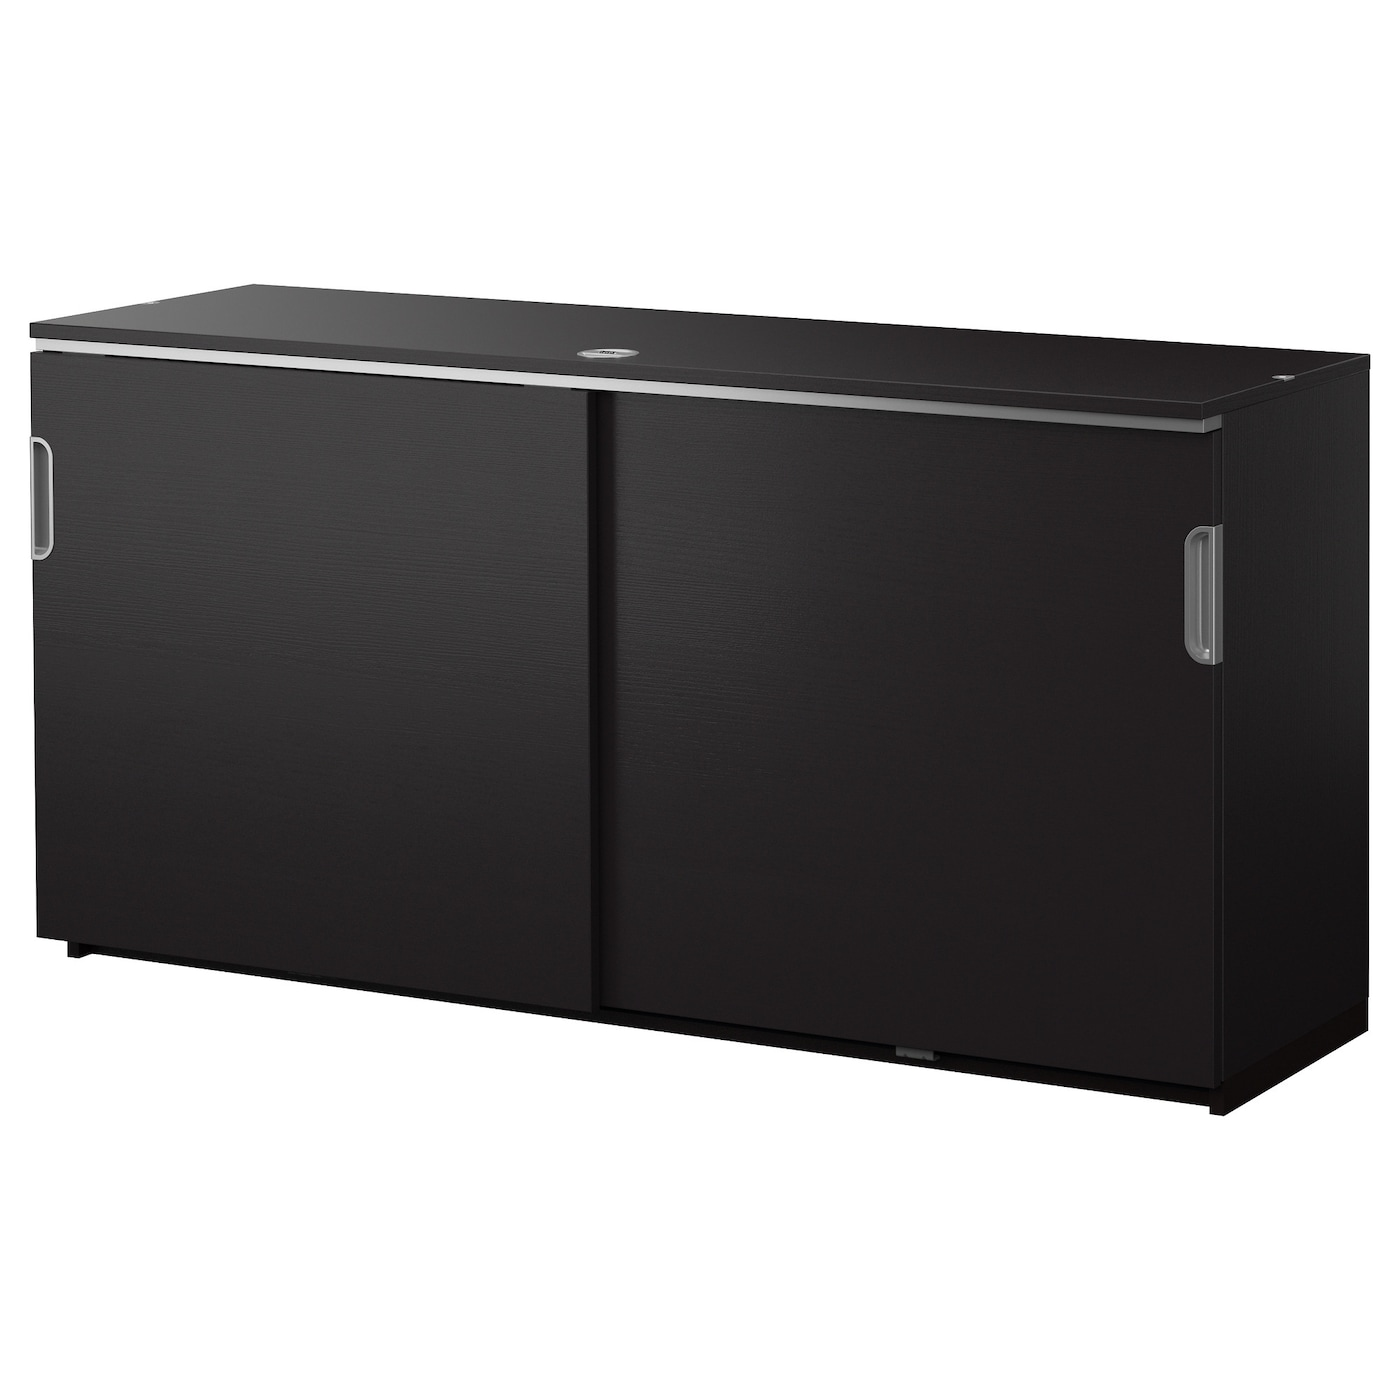 galant cabinet with sliding doors black brown 160x80 cm ikea. Black Bedroom Furniture Sets. Home Design Ideas